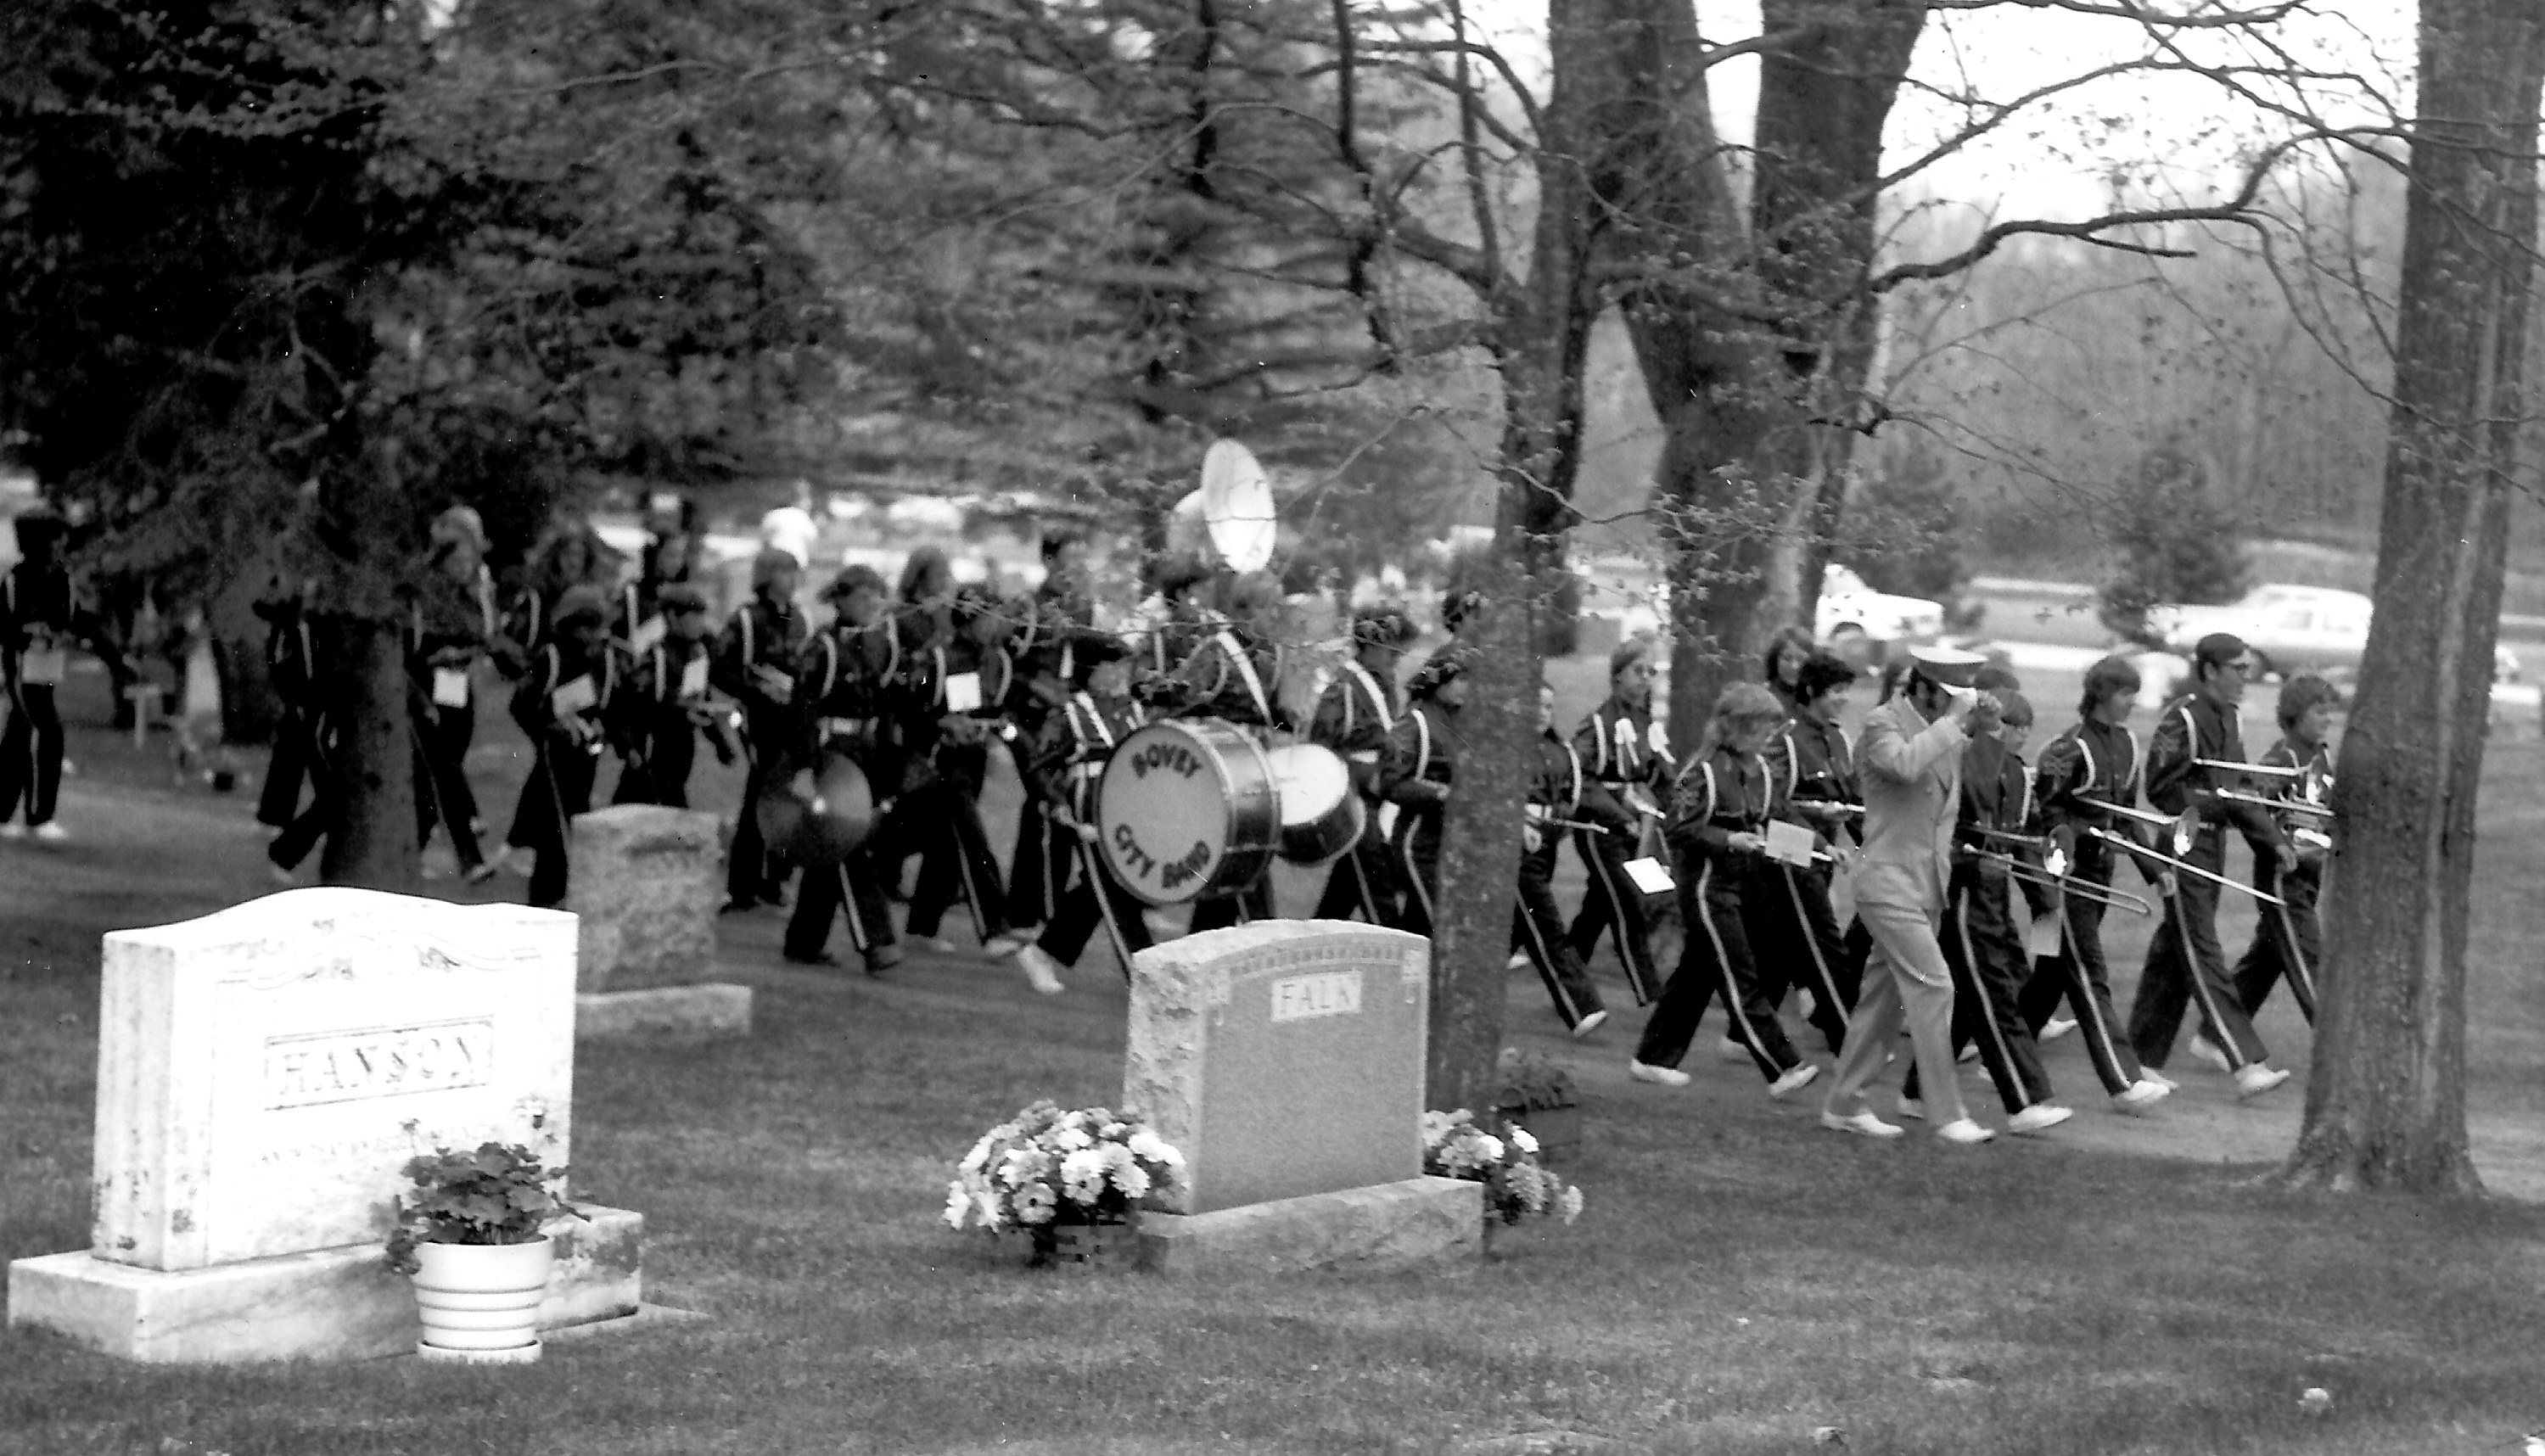 Band Cemetery Parade